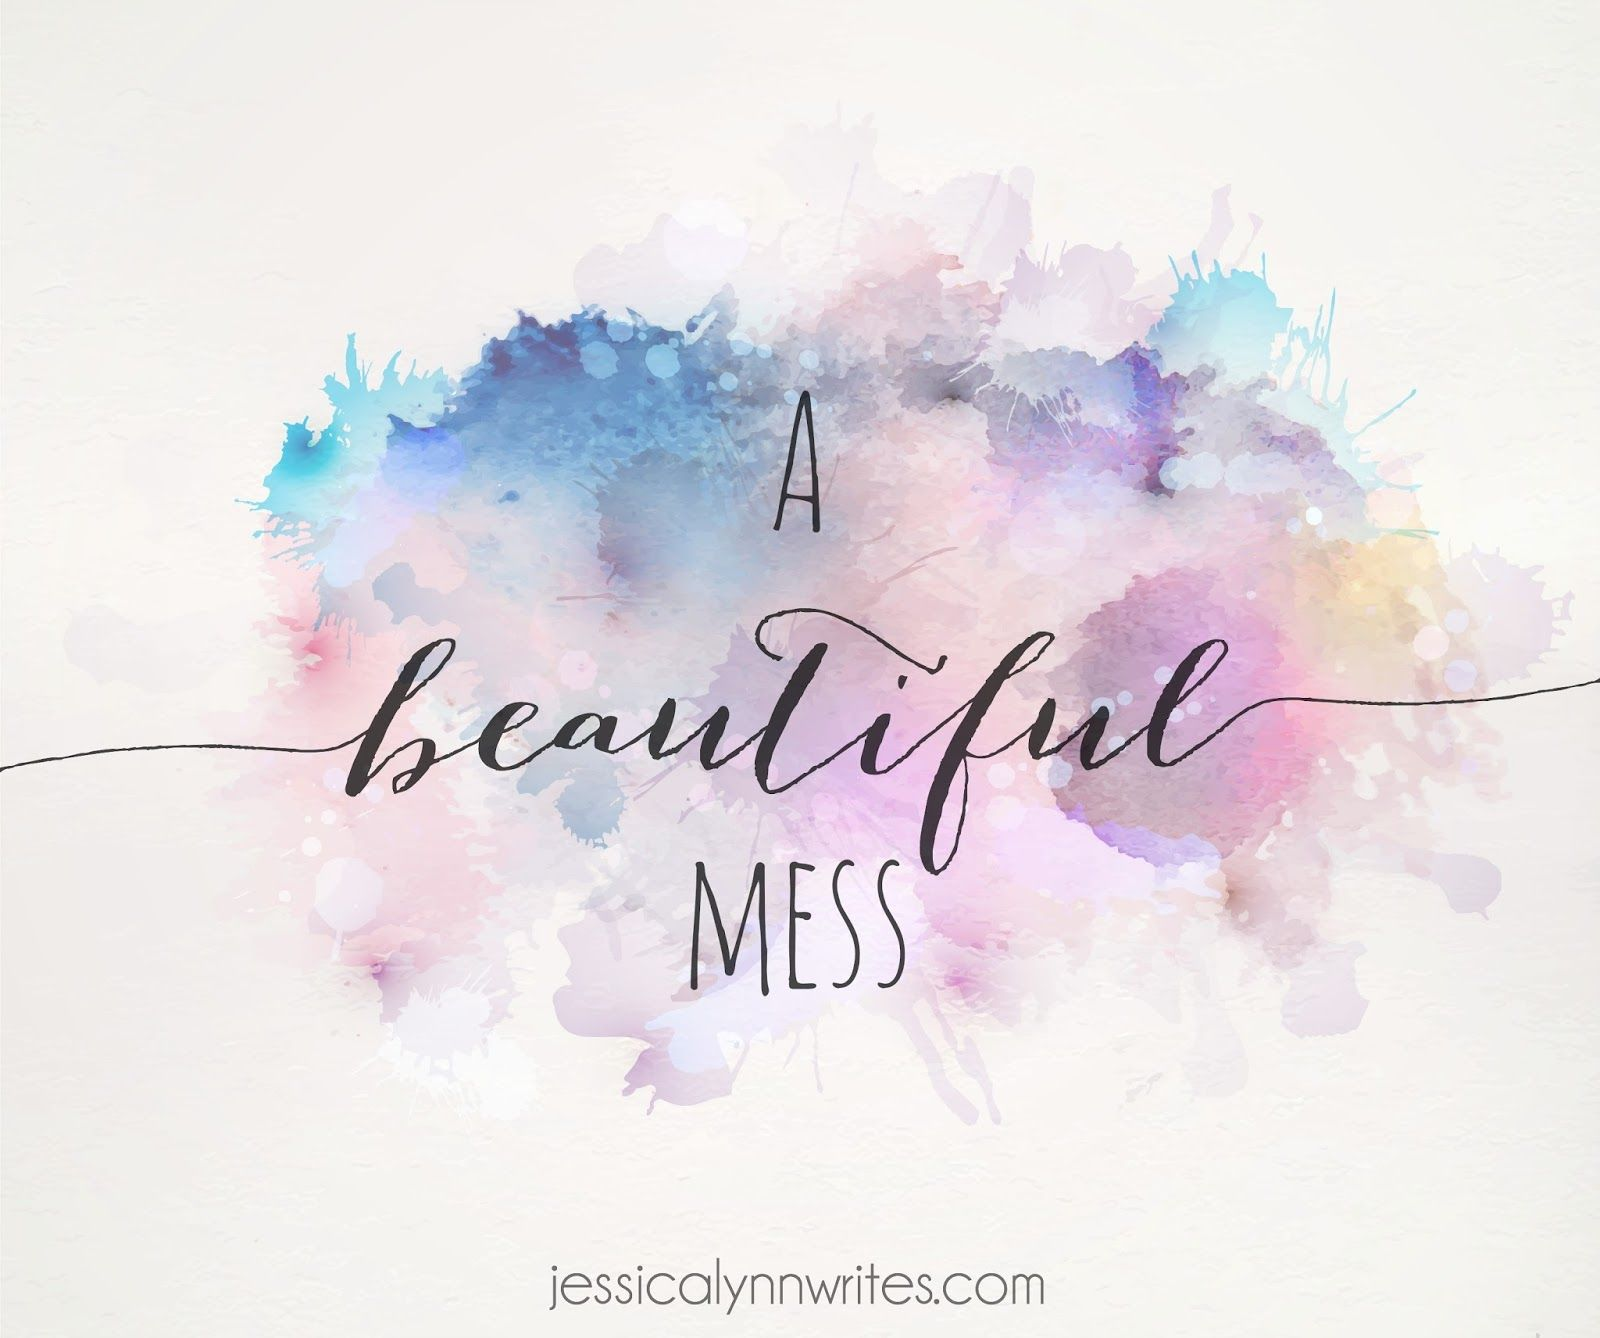 Messed Up Life Quotes: Best 25+ Beautiful Mess Ideas On Pinterest